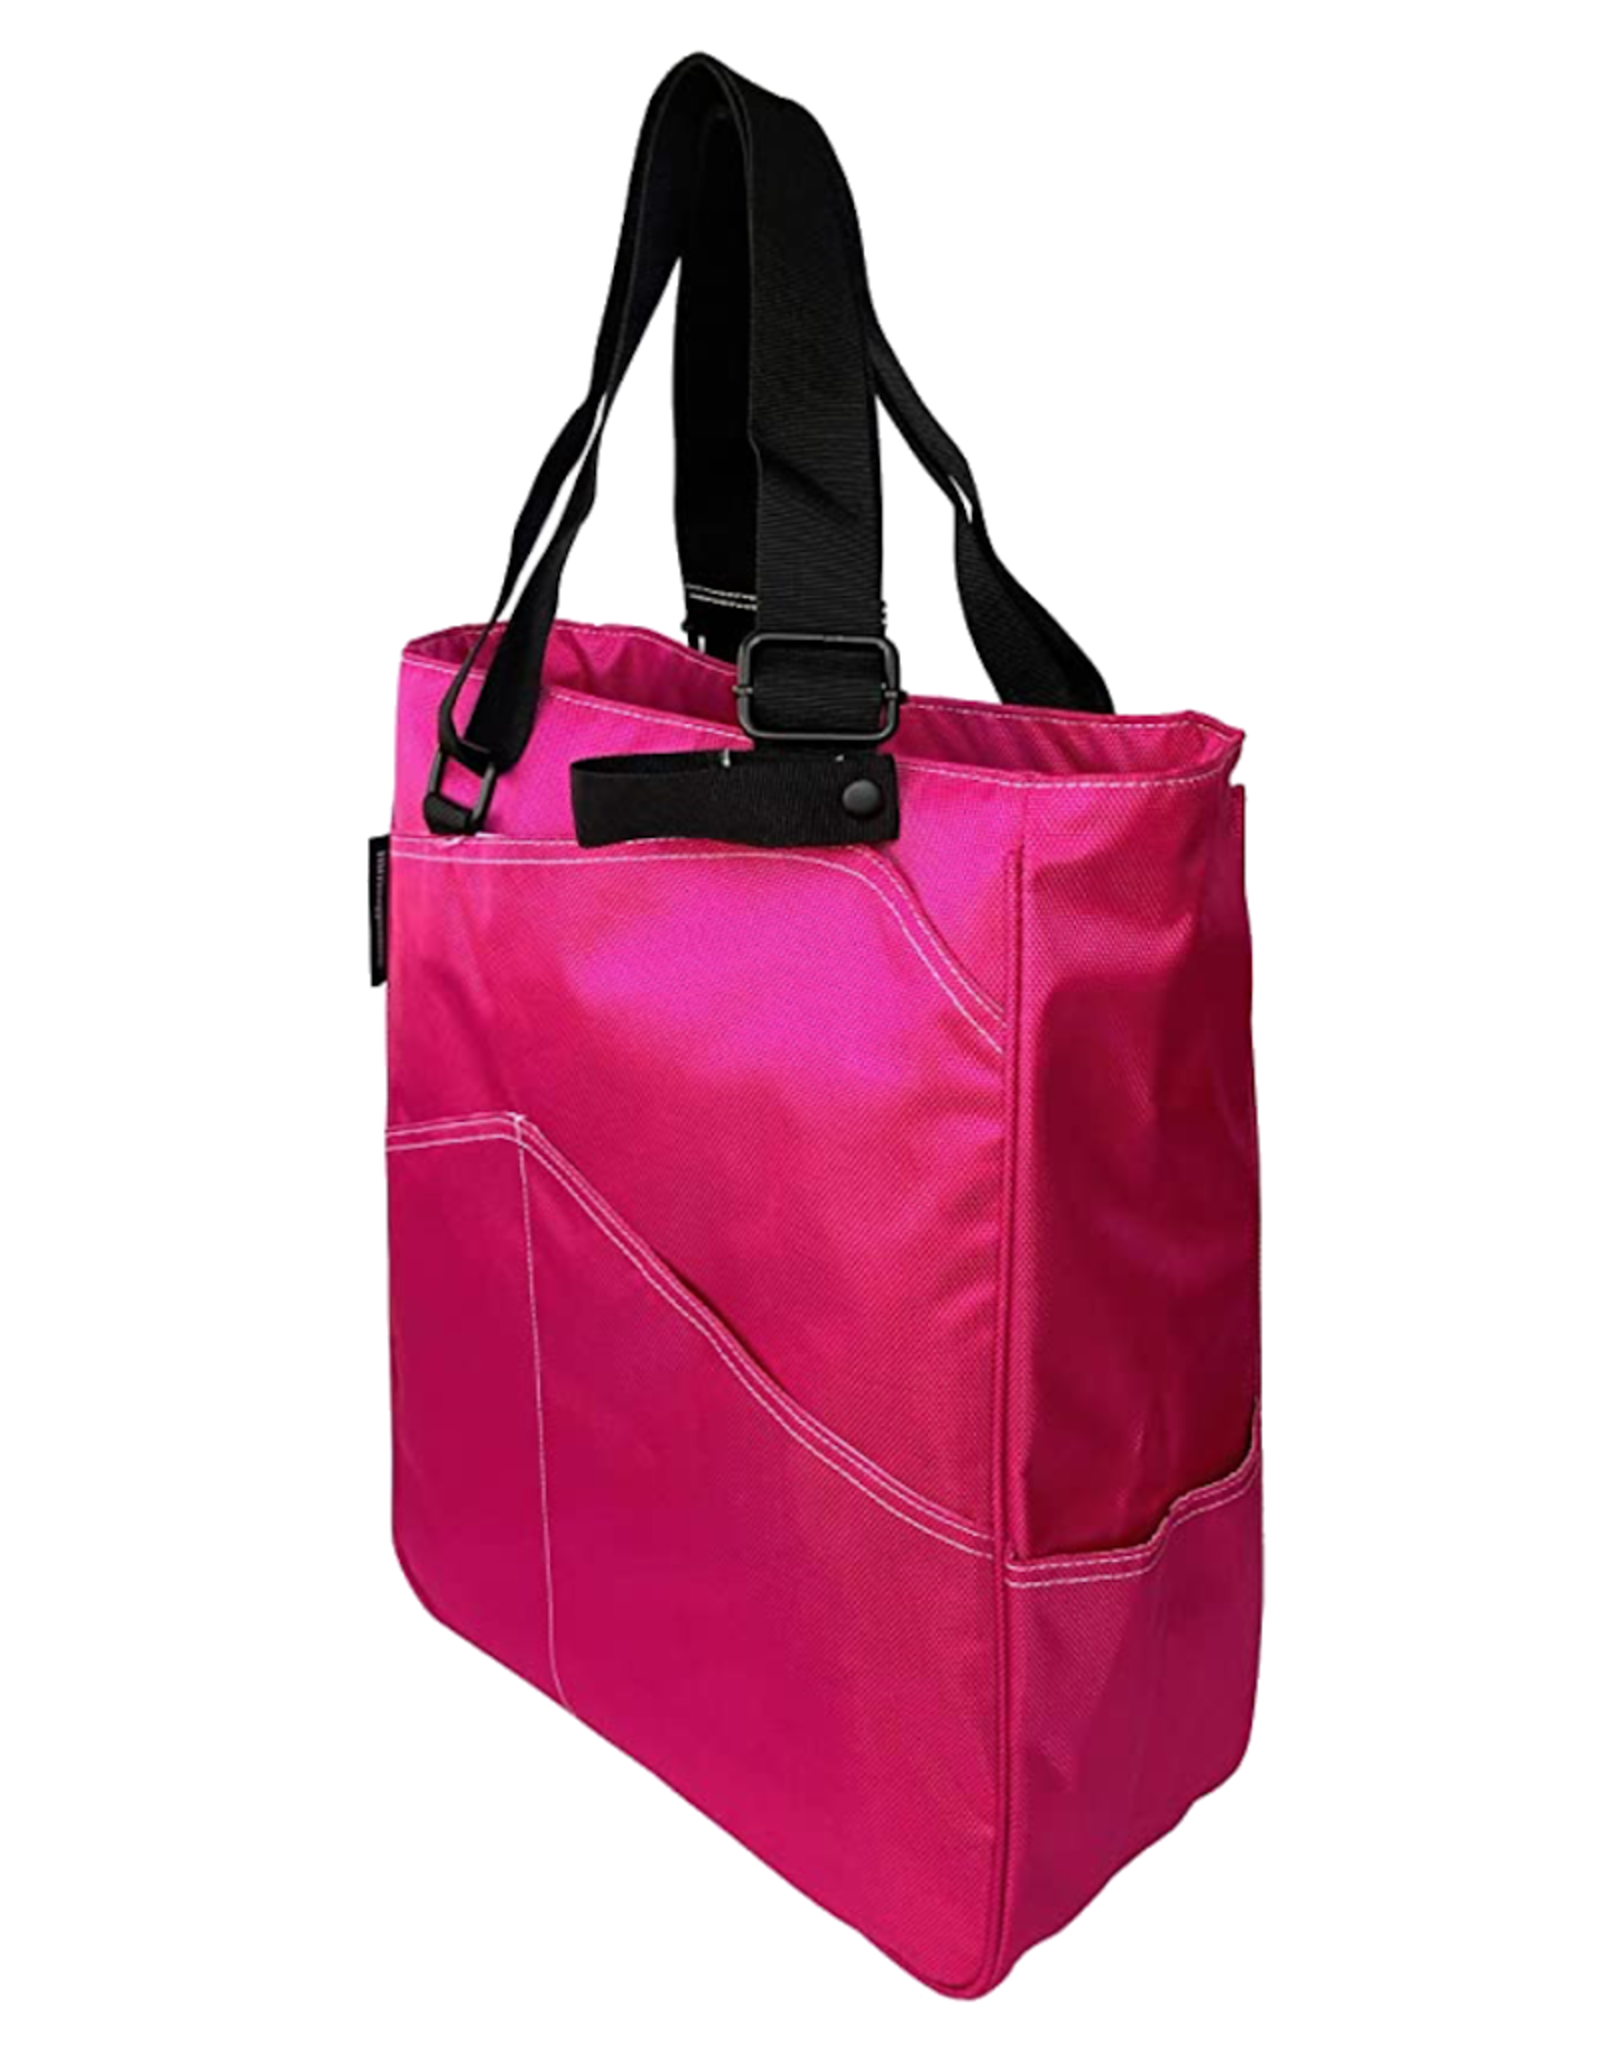 TENNIS ZIPPER TOTE: FUCHSIA